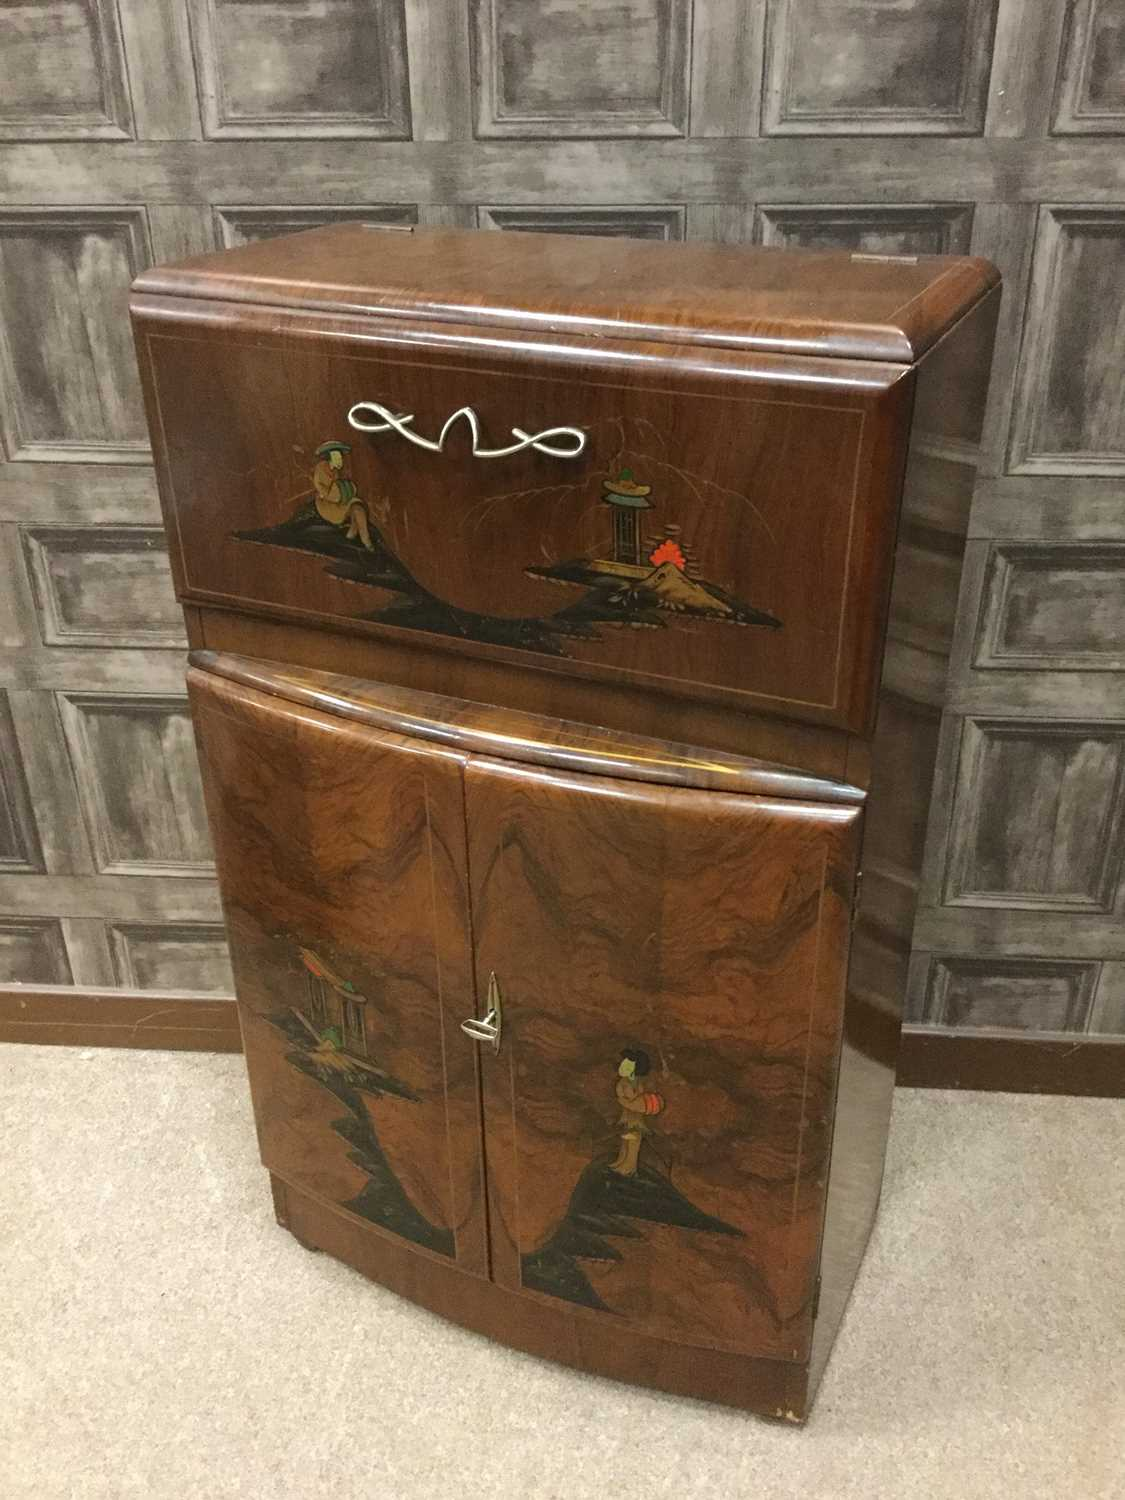 Lot 1600 - AN EARLY 20TH CENTURY JAPANNED WALNUT COCKTAIL CABINET